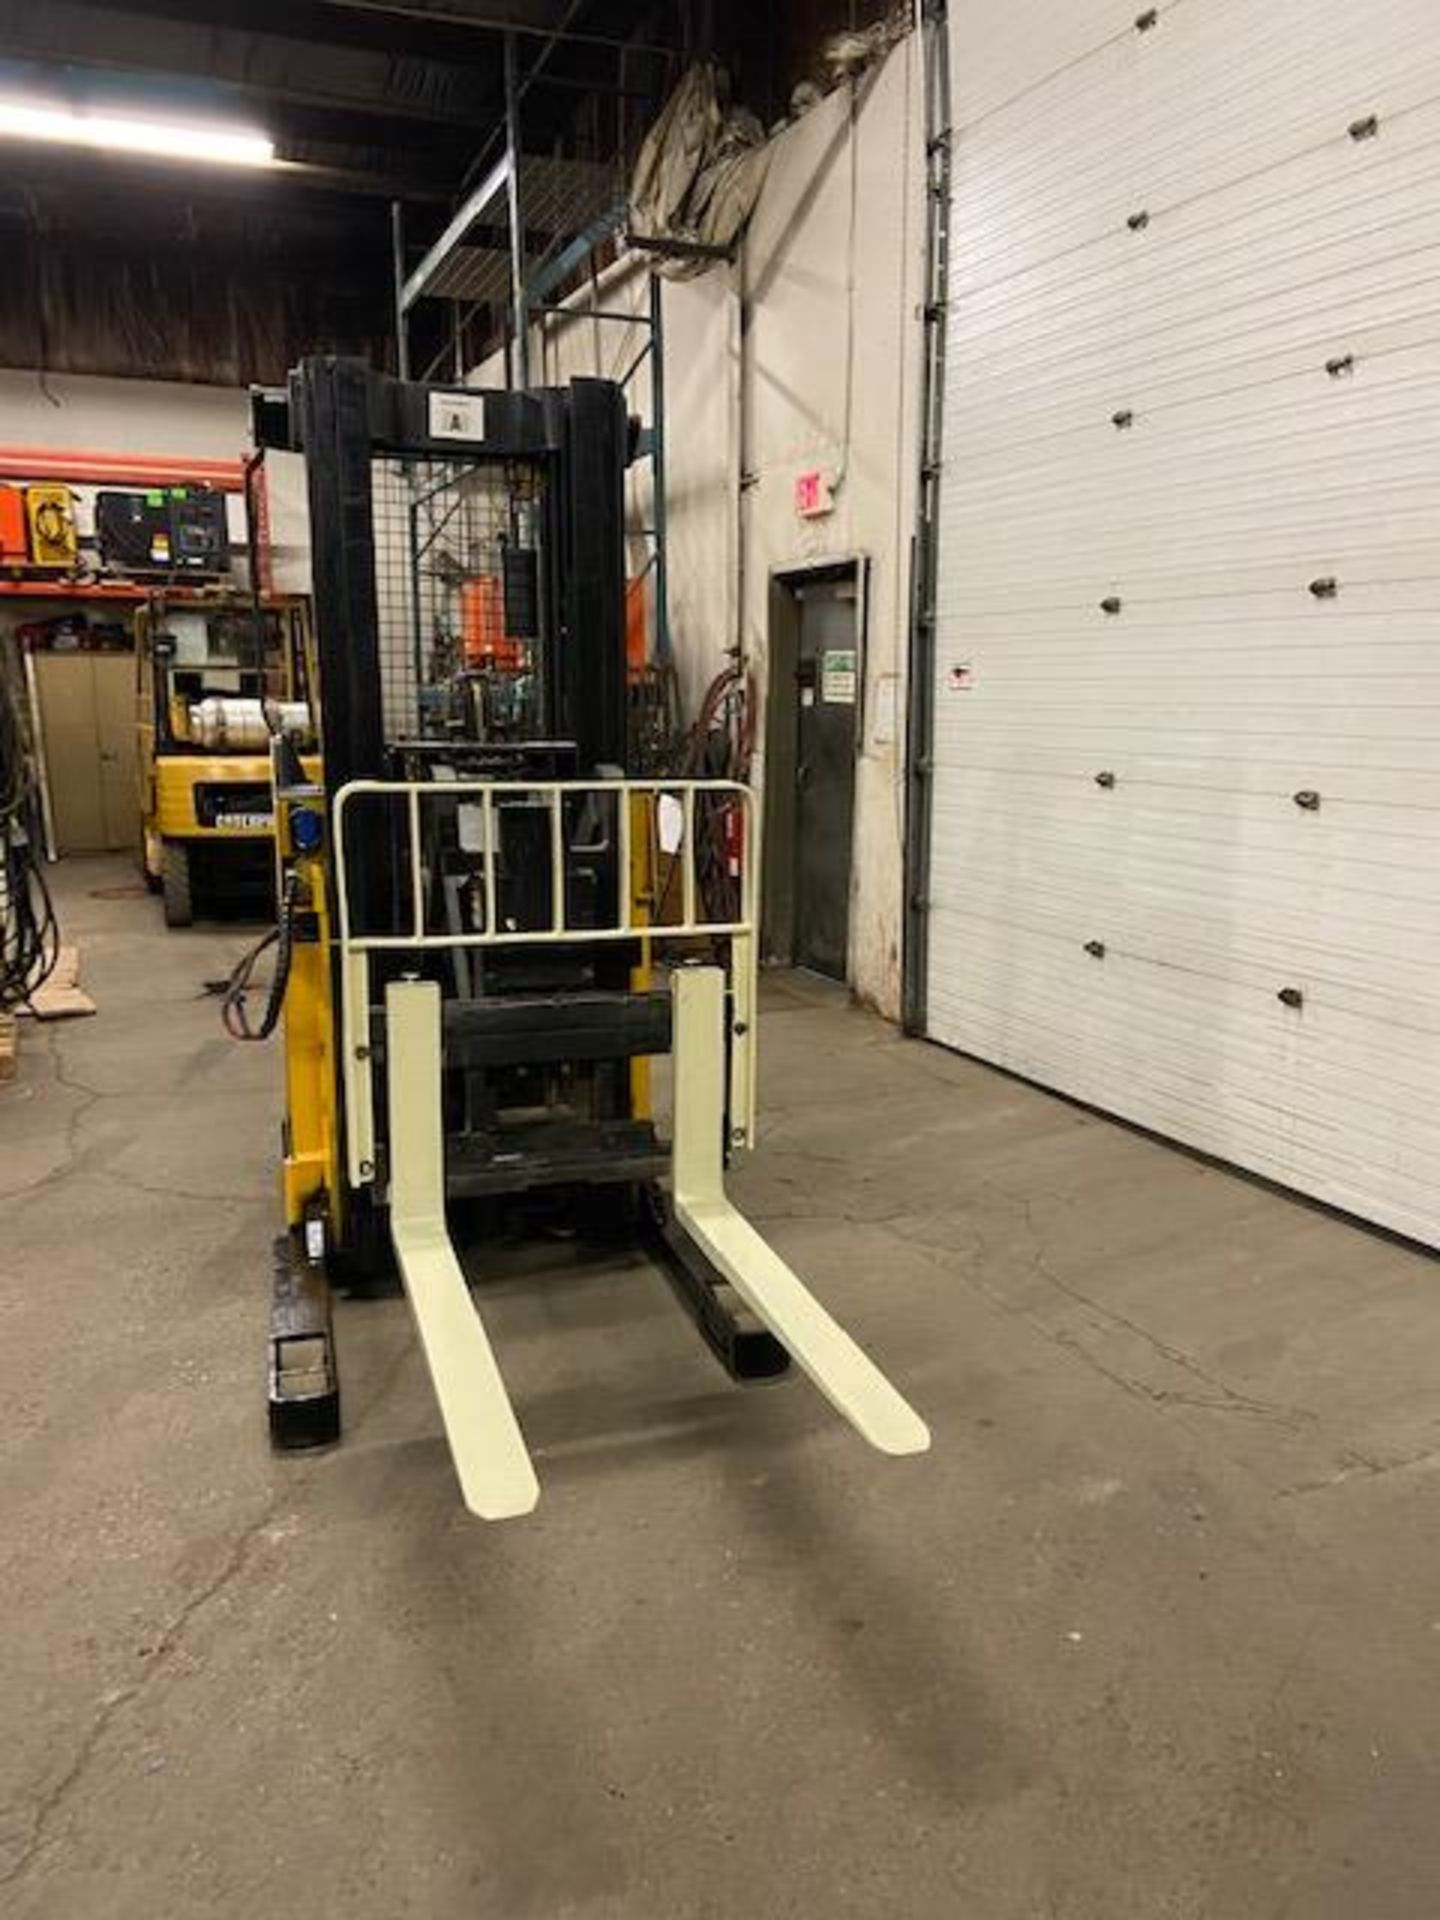 FREE CUSTOMS - Yale Reach Truck Pallet Lifter REACH TRUCK electric 4000lbs with sideshift 3-stage - Image 3 of 7